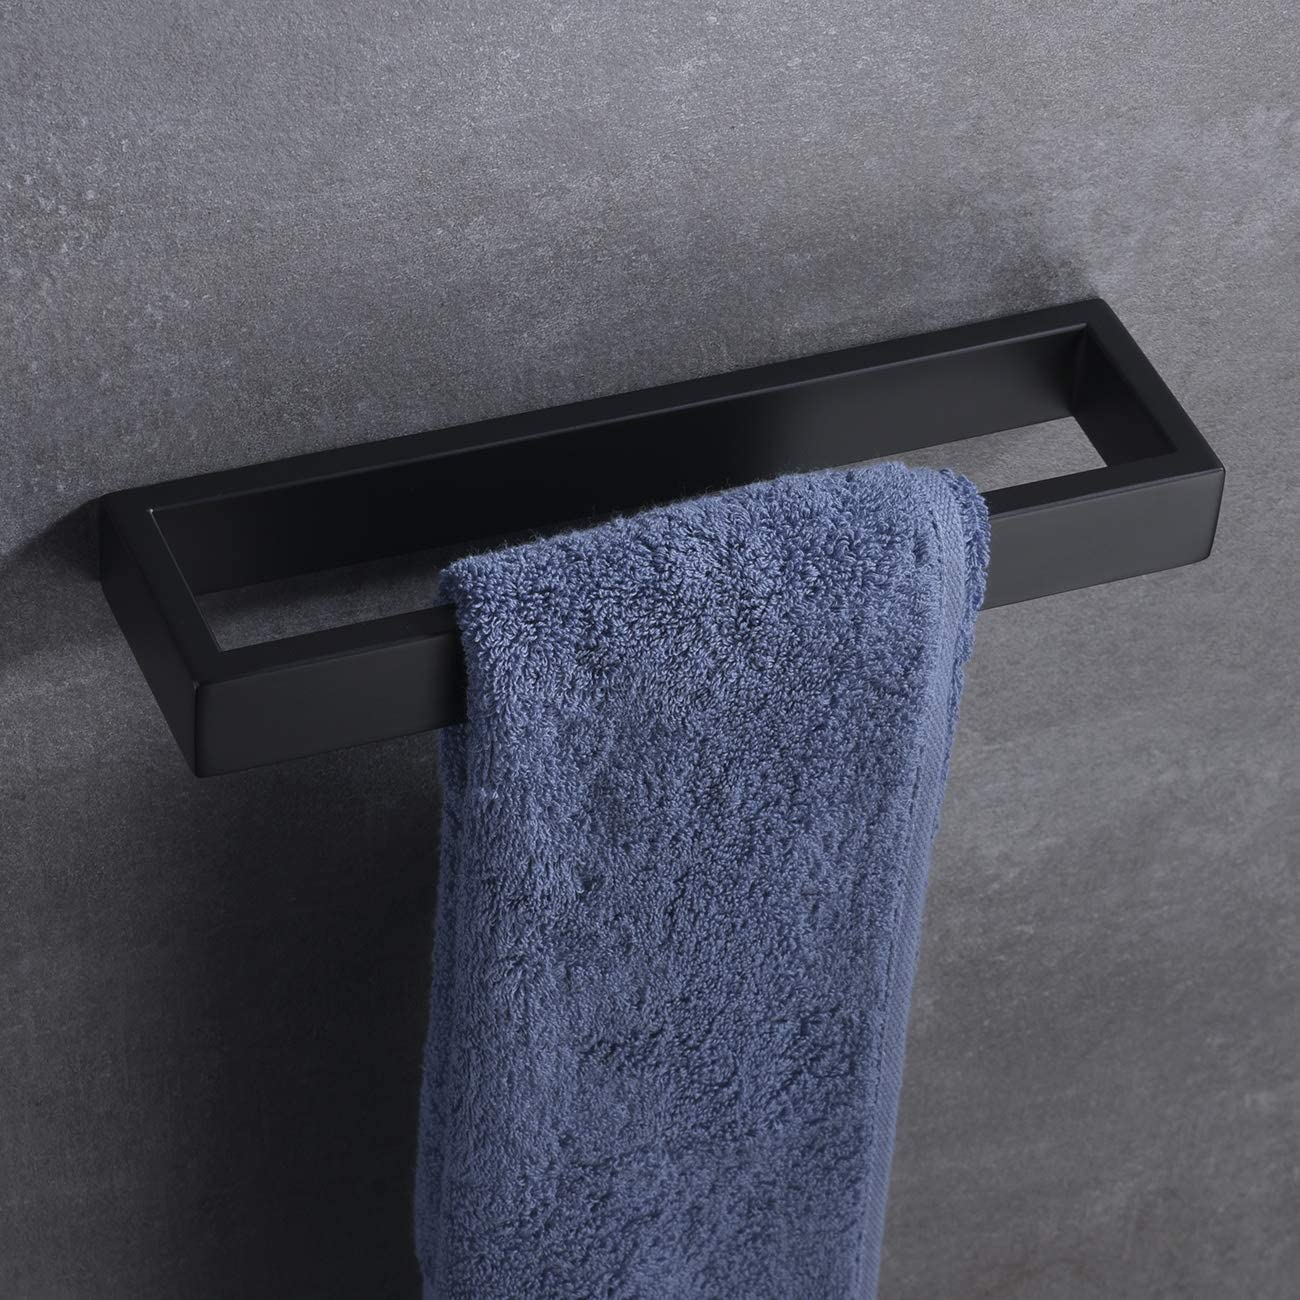 D110-BK Hand Towel Ring Matte Black SUS 304 Stainless Steel Contemporary Style Wall Mount Hoooh Bath Towel Holder